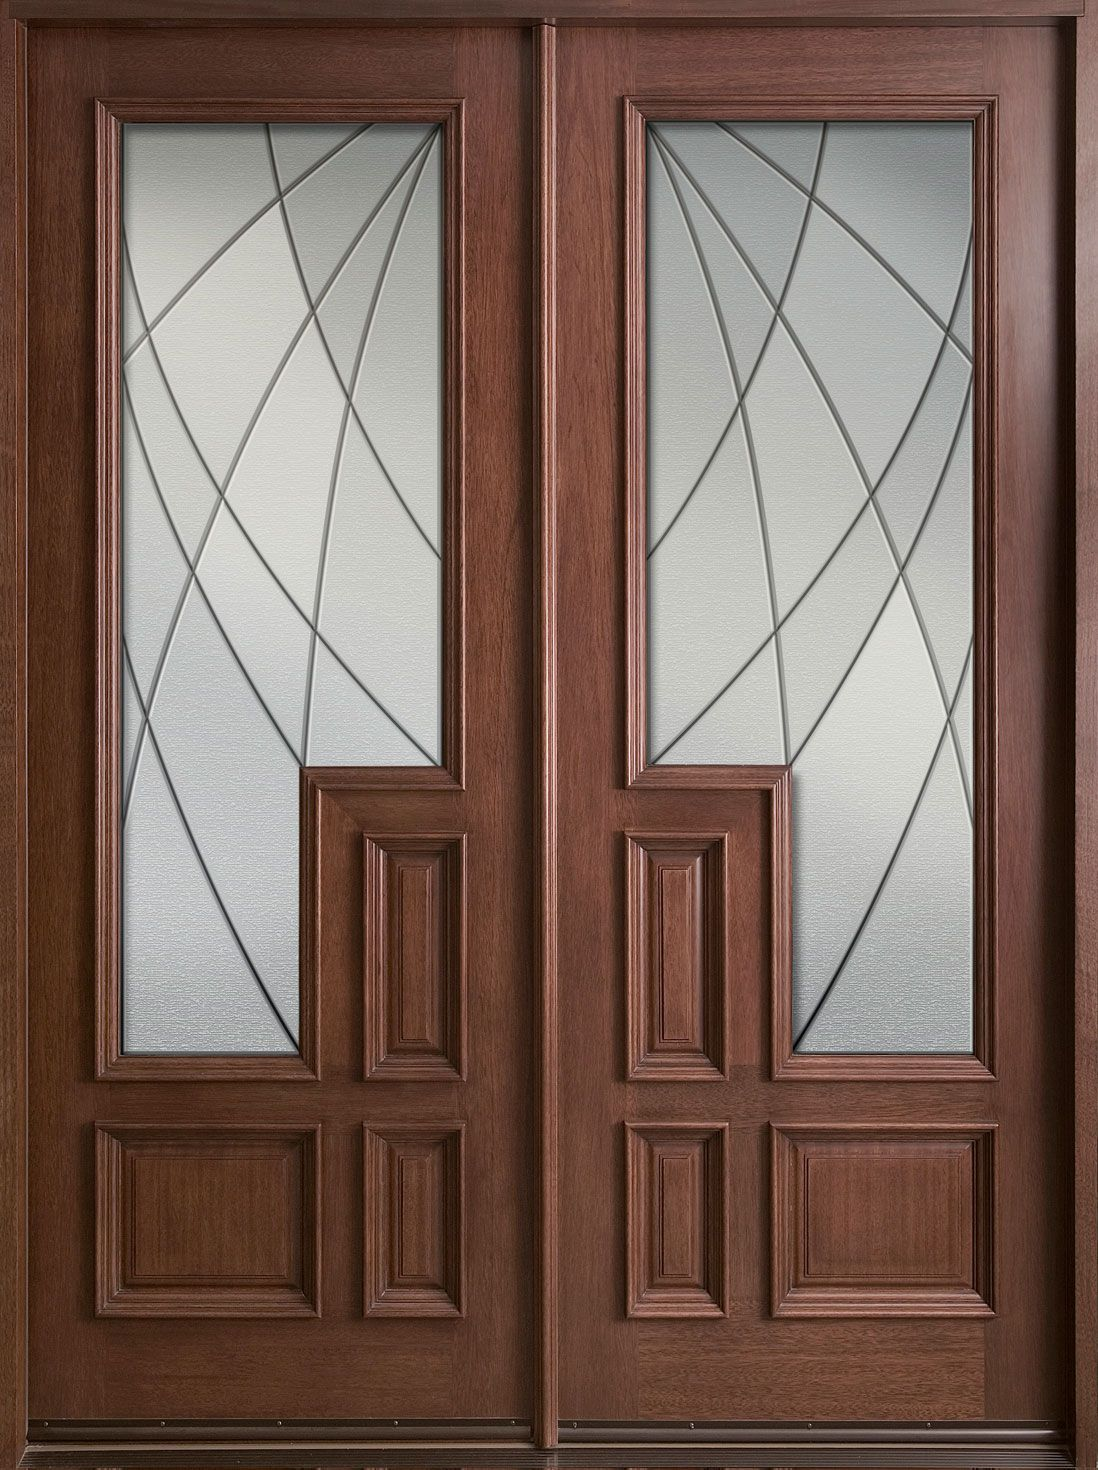 Inspiring double fiberglass entry door as furniture for for Exterior double doors